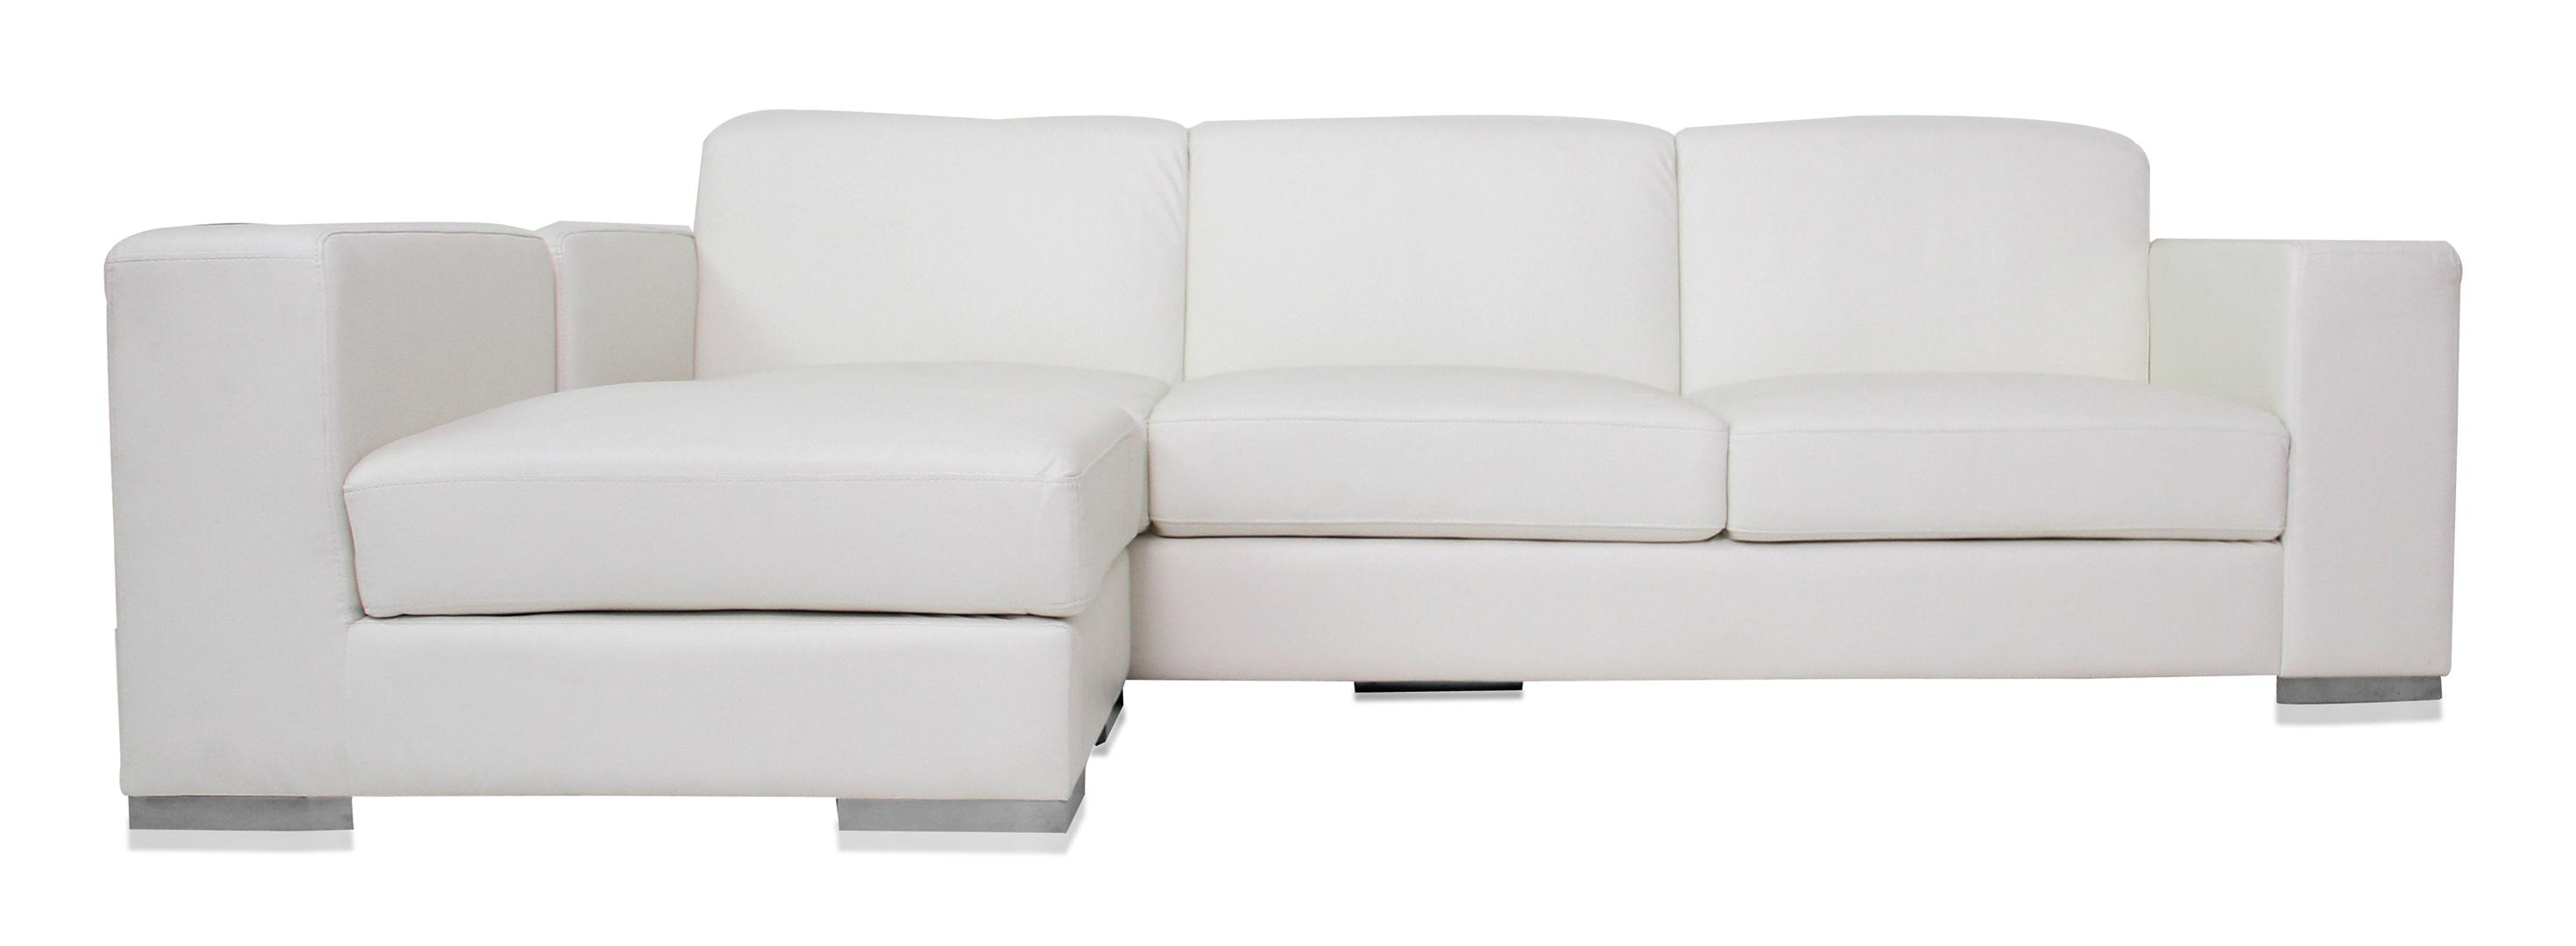 Beautiful Modern White Couch Contemporary Sofa Designs Living Room With White Leather Sofas (View 16 of 20)